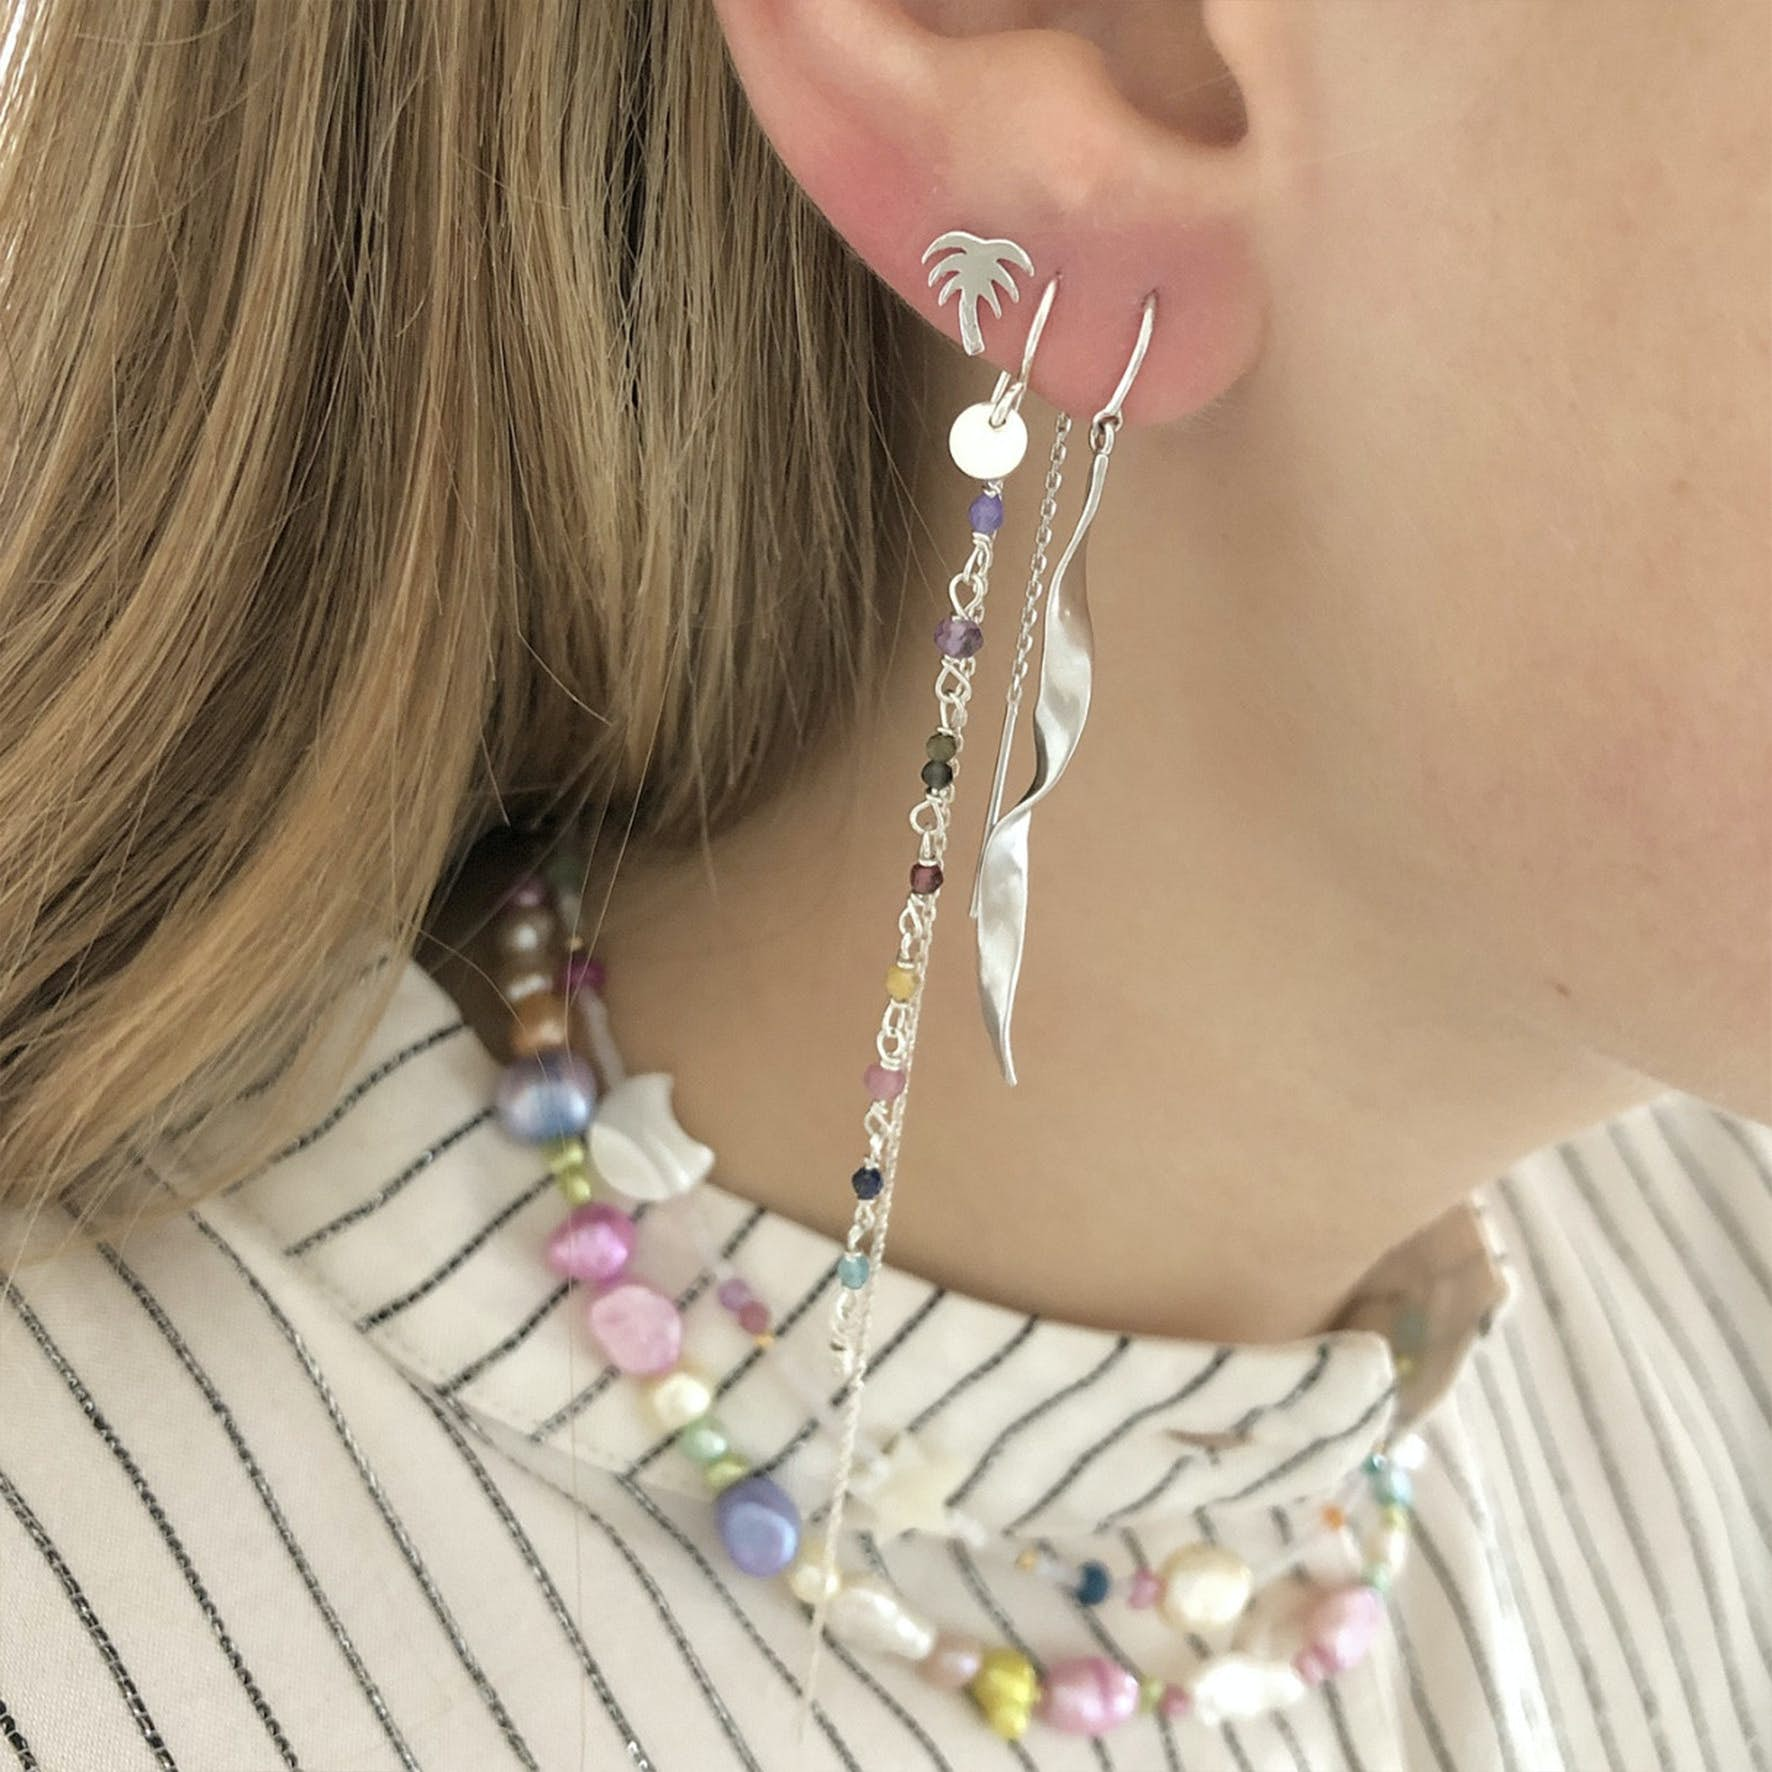 Petit Gemstones Earring With Long Chain - Berry Mix from STINE A Jewelry in Silver Sterling 925